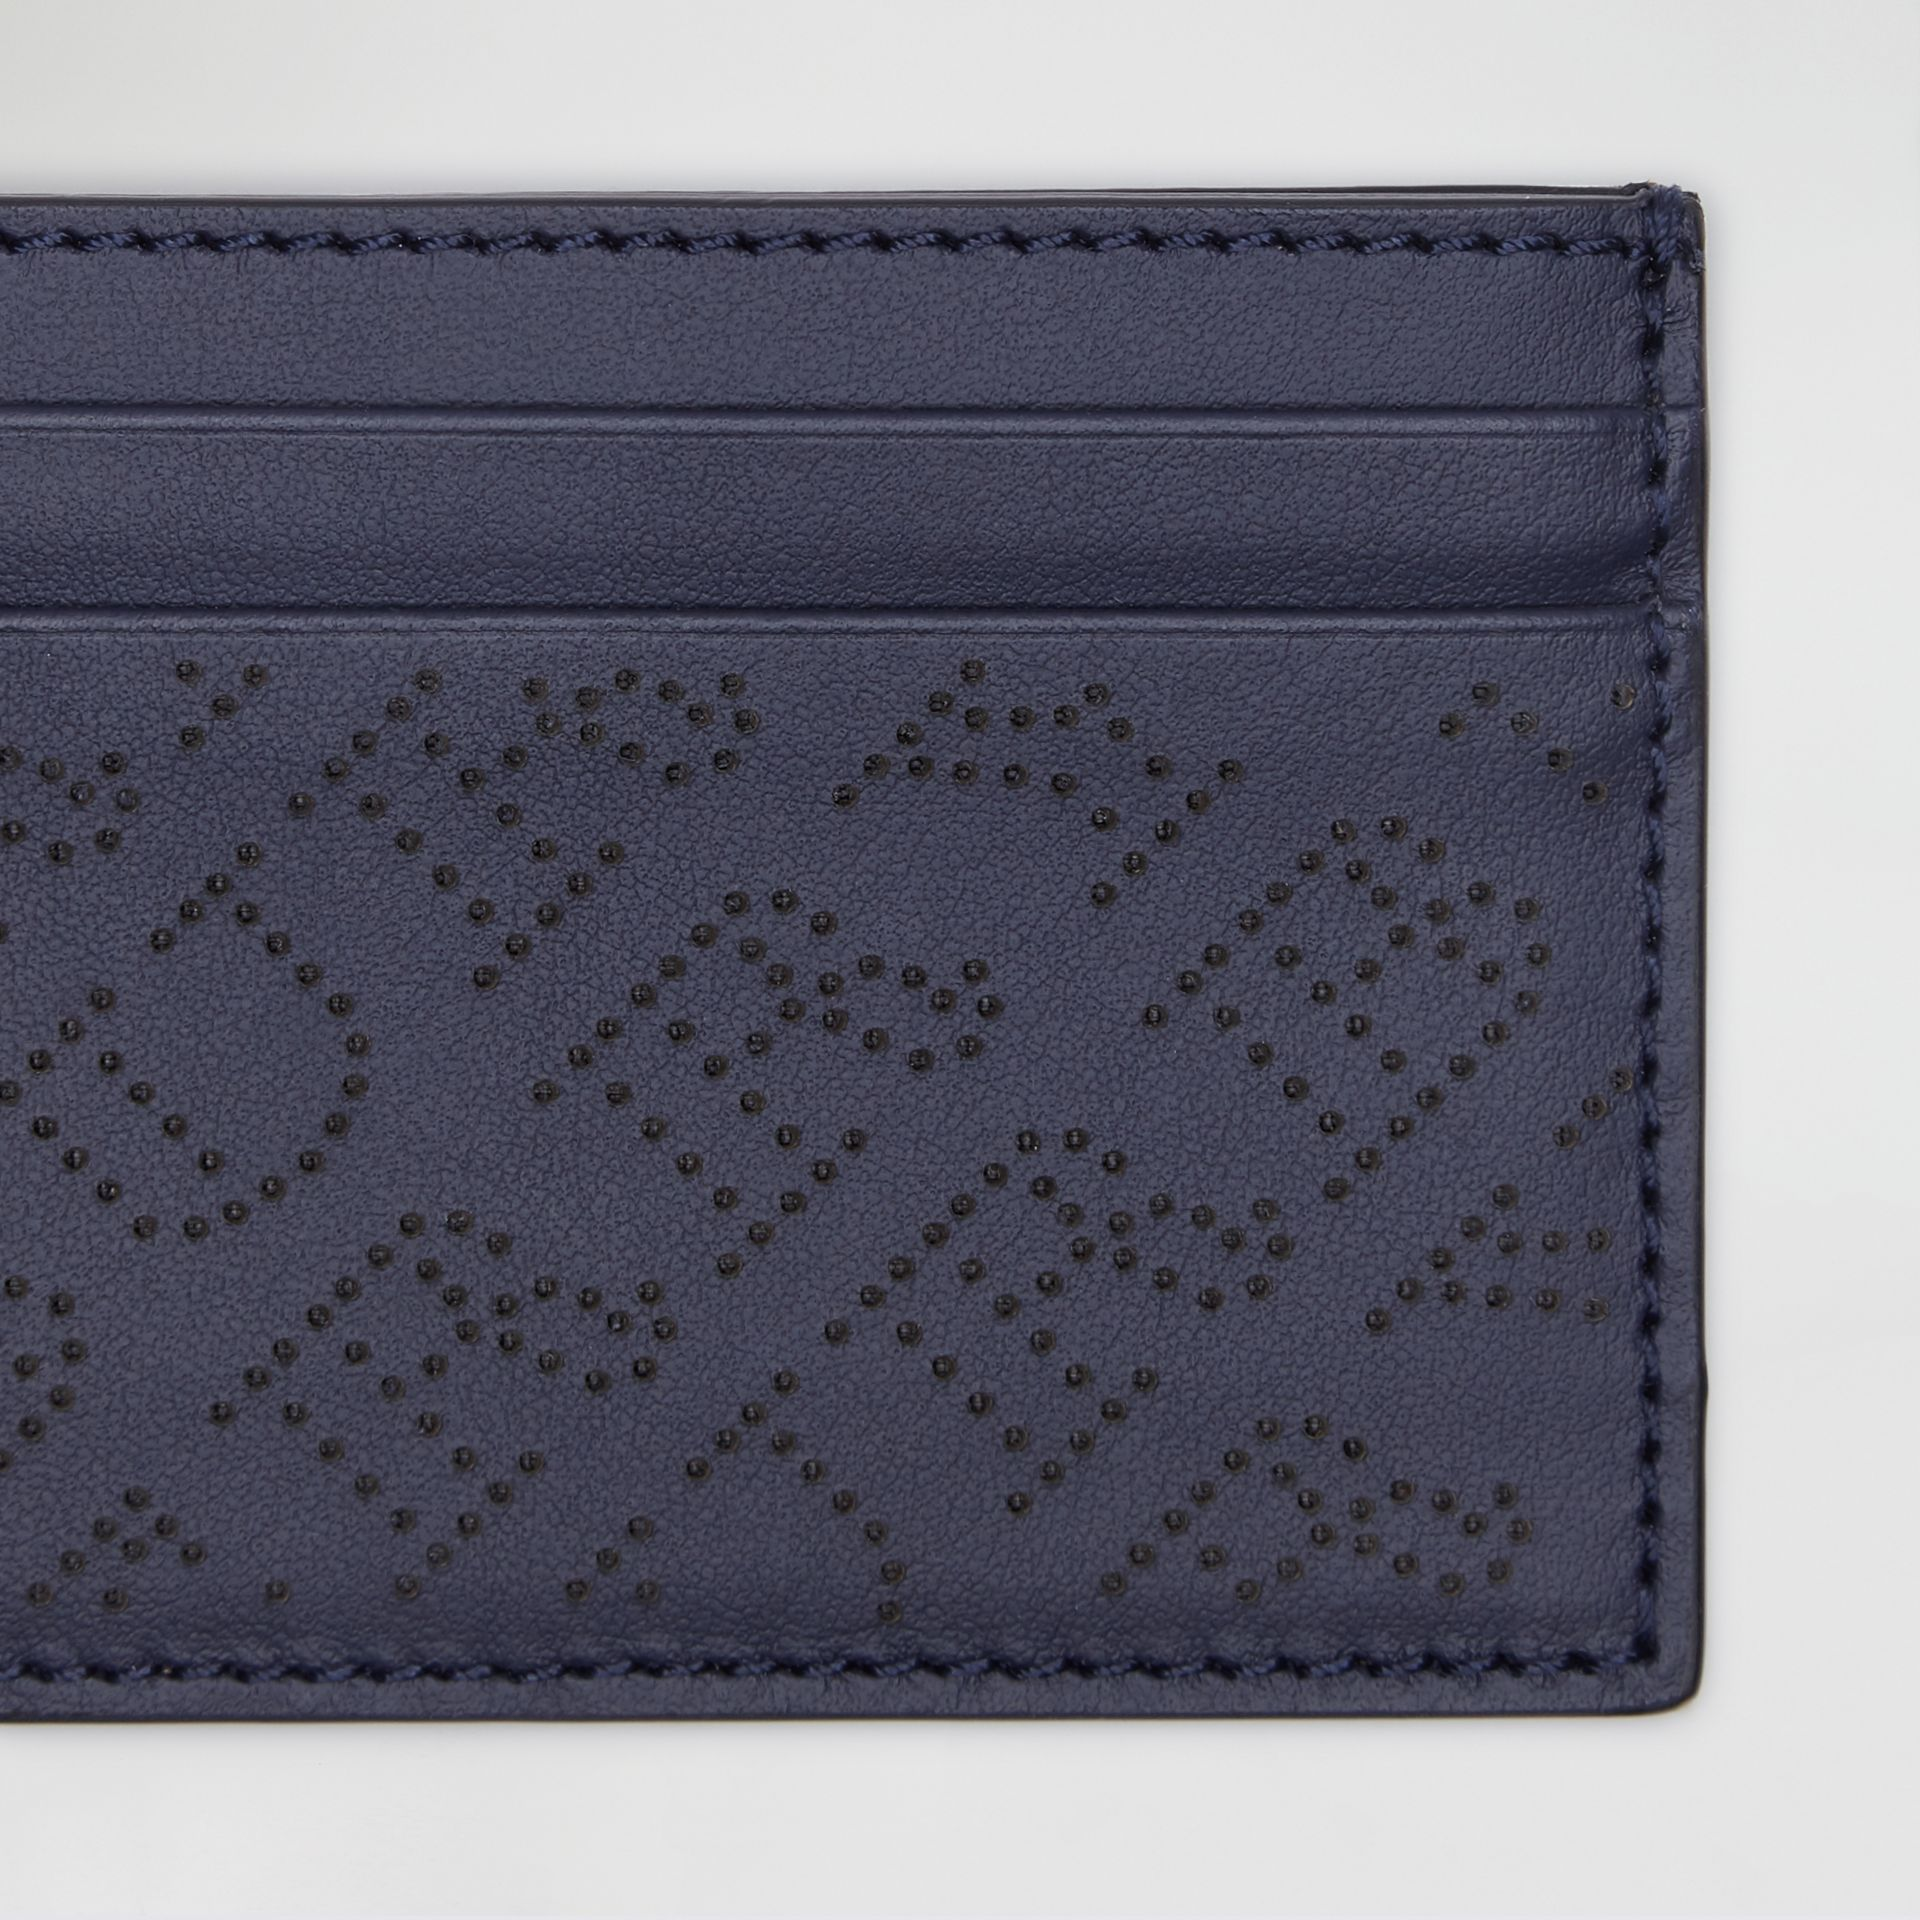 Perforated Logo Leather Card Case in Navy - Women | Burberry United States - gallery image 1